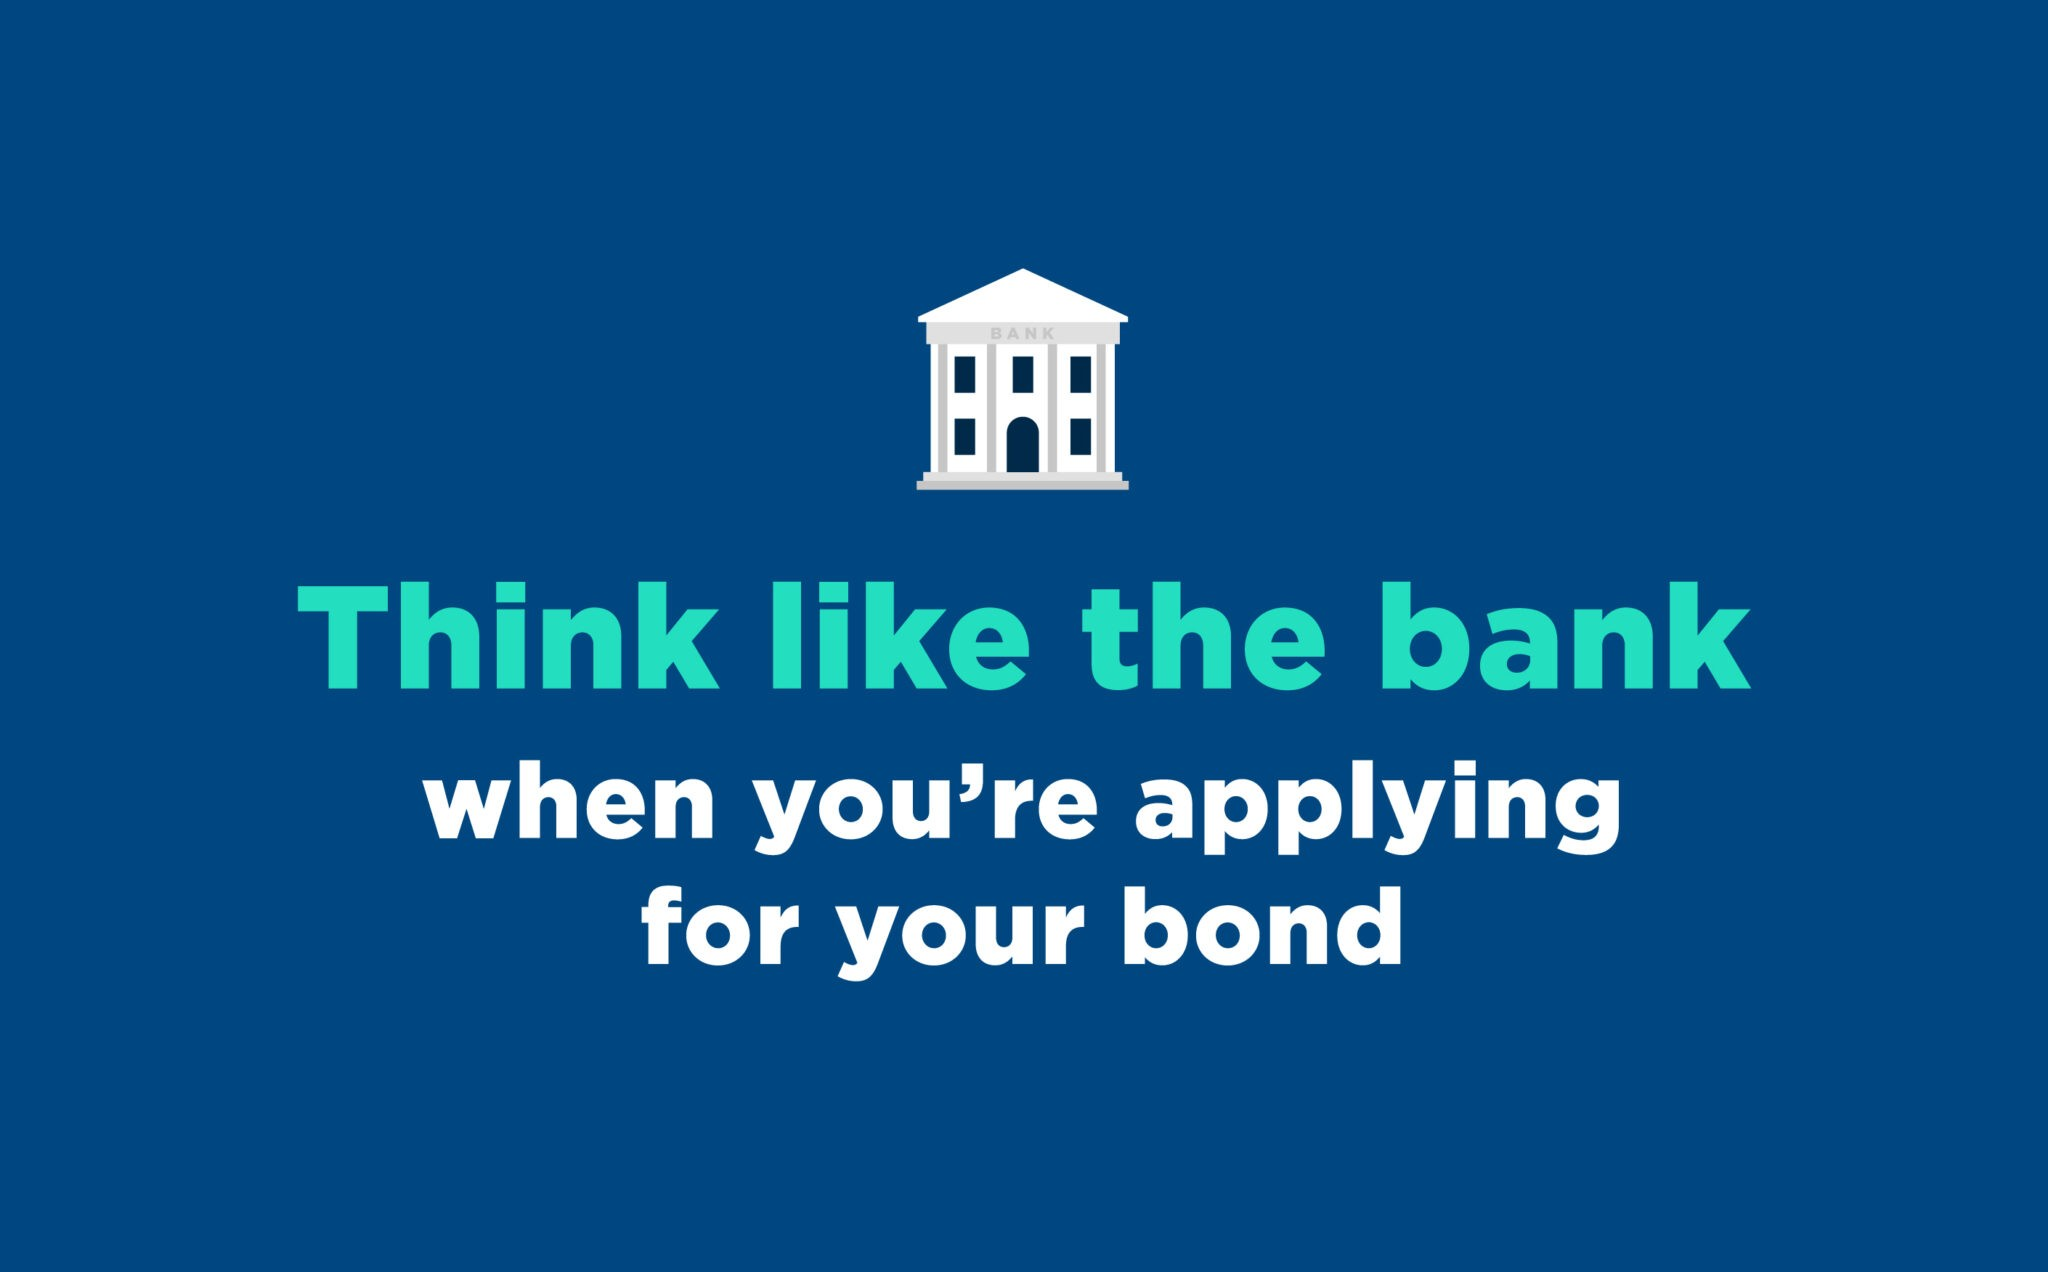 Think like the bank does when you're applying for your bond